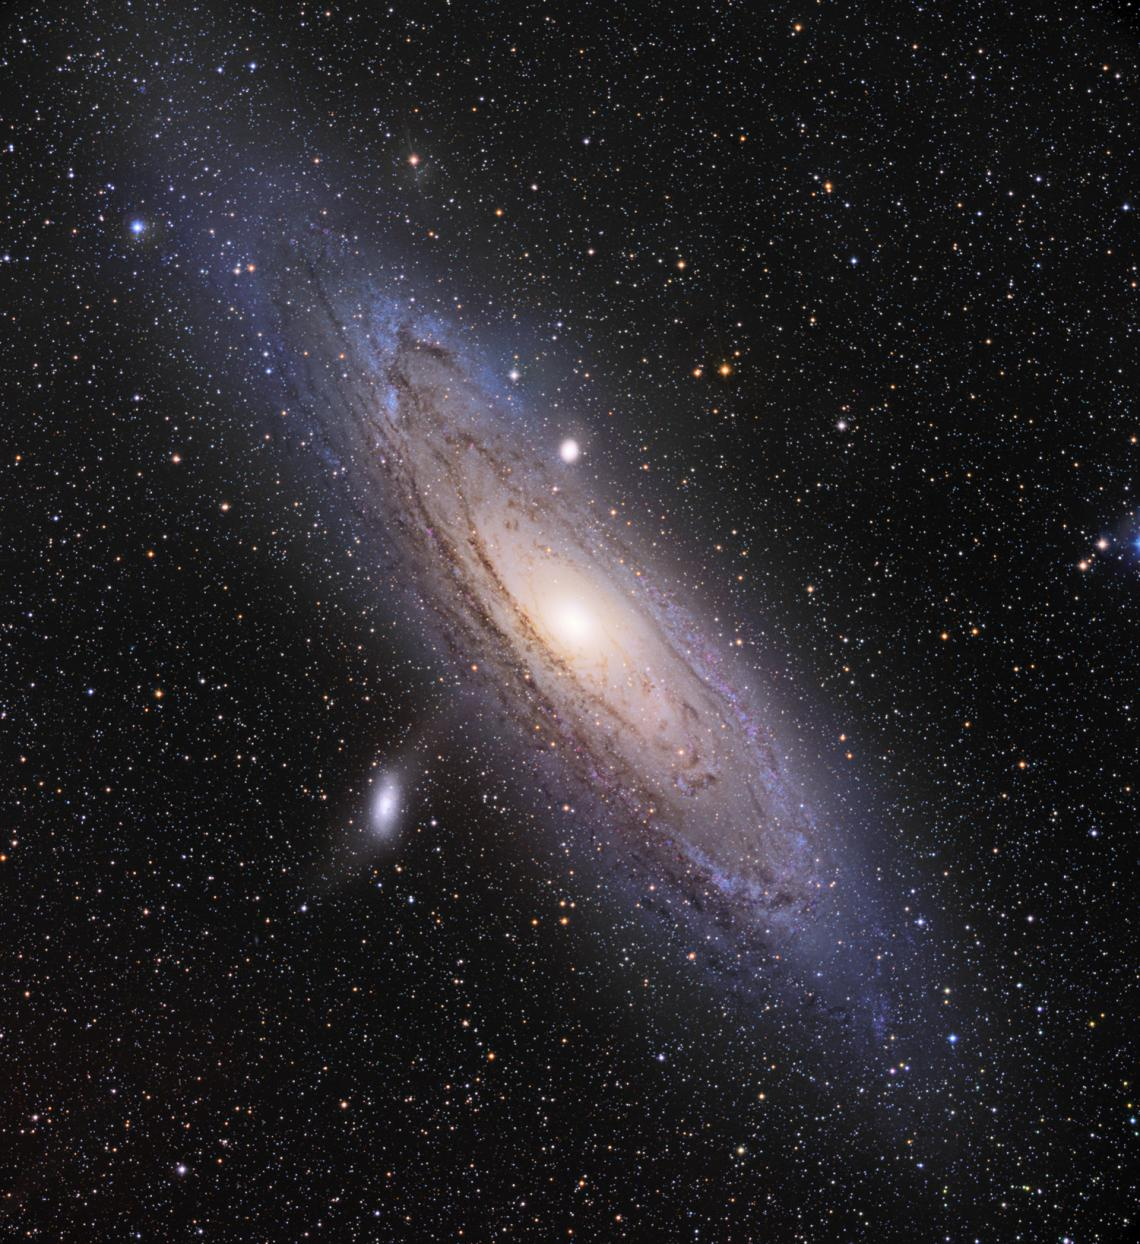 Our Milky Way's largest neighbor, the Andromeda Galaxy, spans about 220,000 light-years across. Two of its dwarf satellite galaxies, Messier 110  and Messier 32 , are visible as bright white spots in this image taken by UA astrophotographer Adam Block.